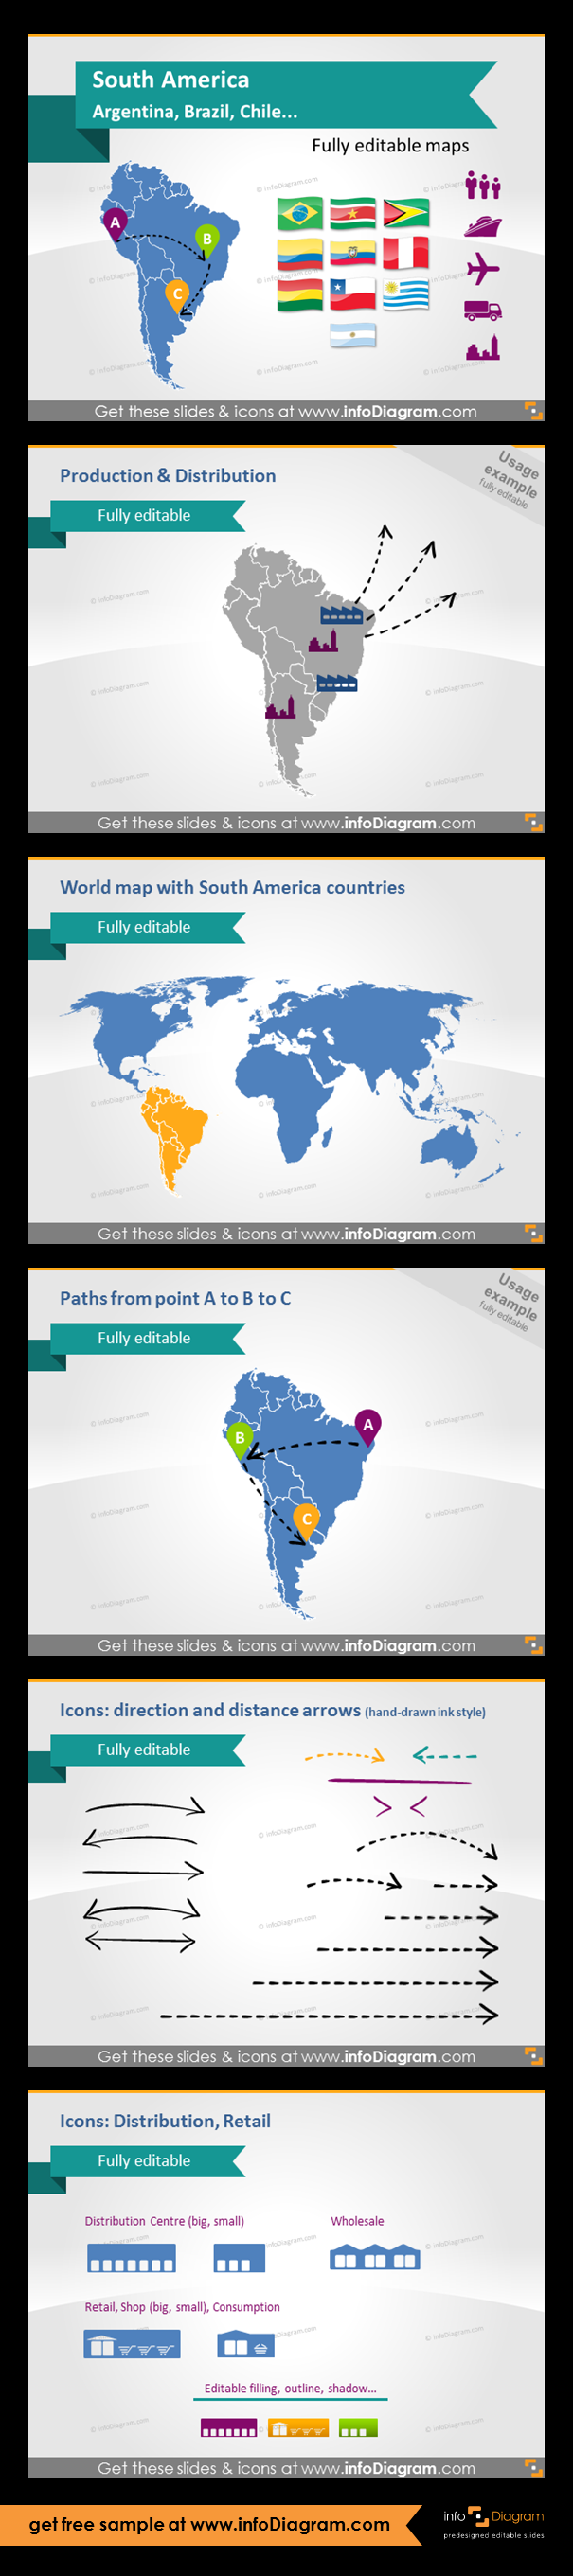 South america countries editable powerpoint maps localization and south america countries editable powerpoint maps localization and transport icons country statistics fully editable maps icons arrows gumiabroncs Images